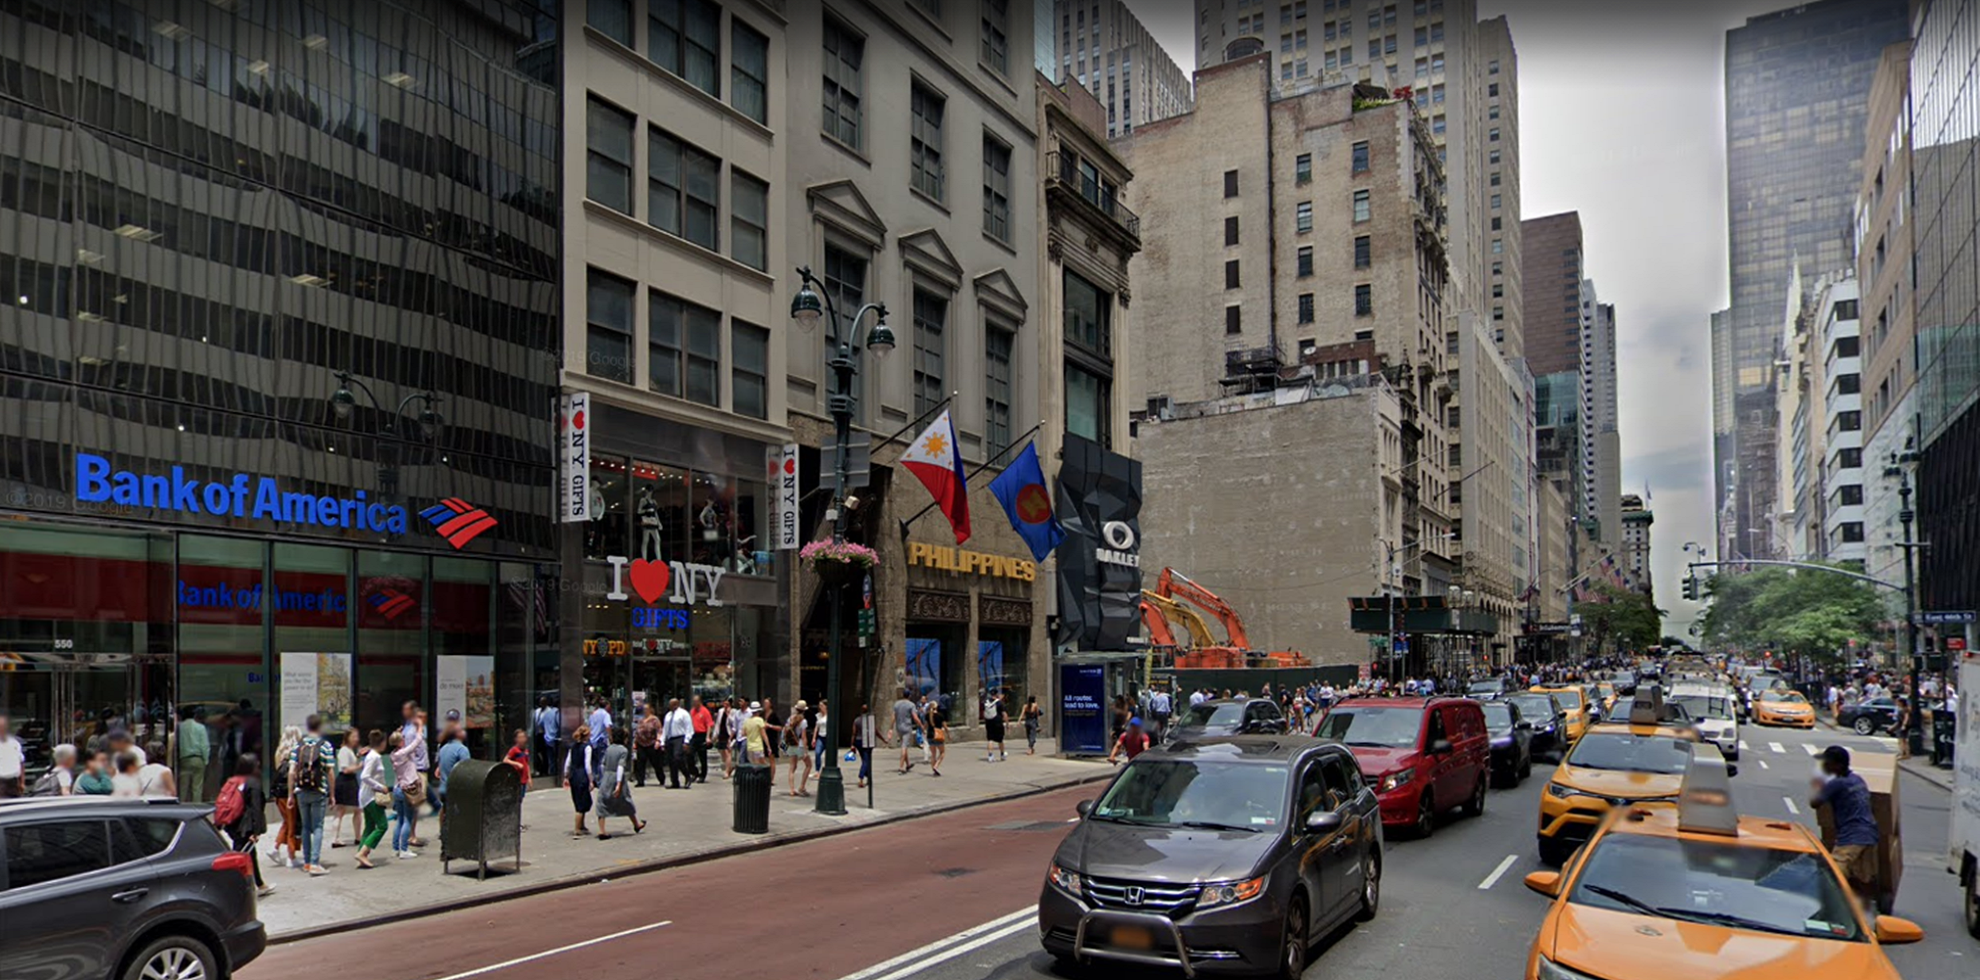 Bank of America financial center with walk-up ATM | 550 5th Ave, New York, NY 10036